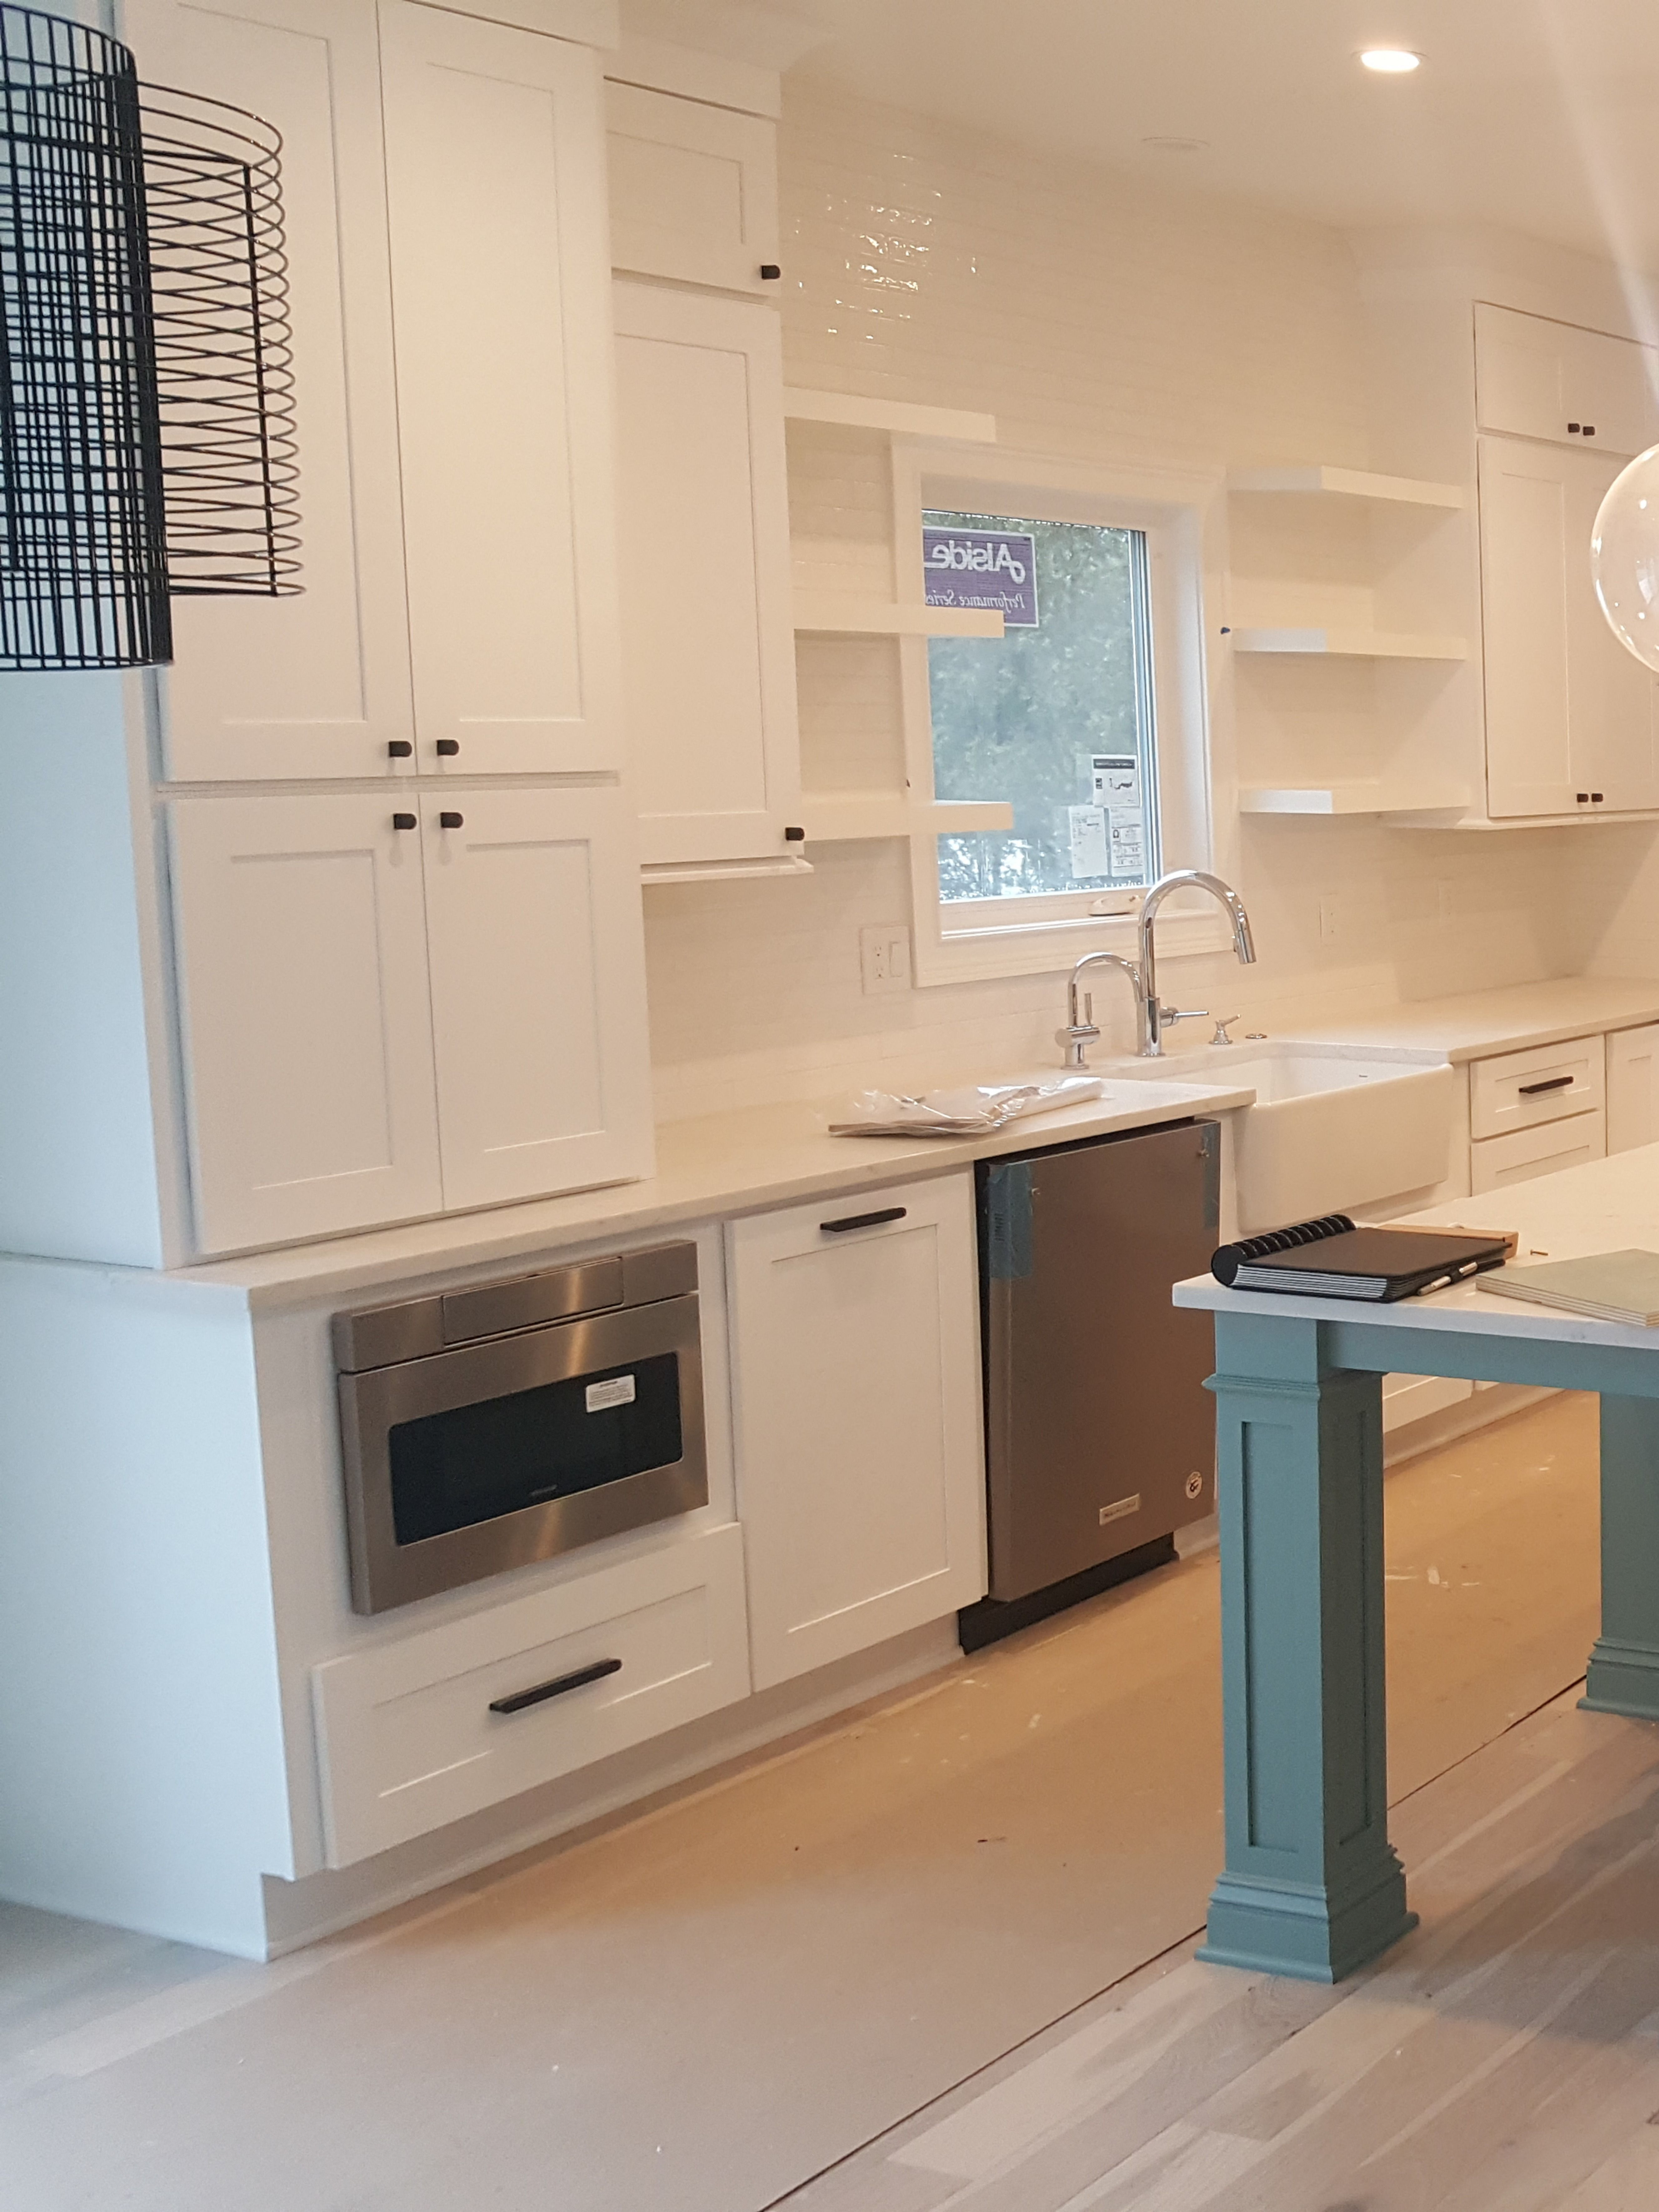 White Kitchen Cabinets Lily Ann Cabinets Wholesale Kitchen Cabinets Modern Kitchen Room Kitchen Decor Styles